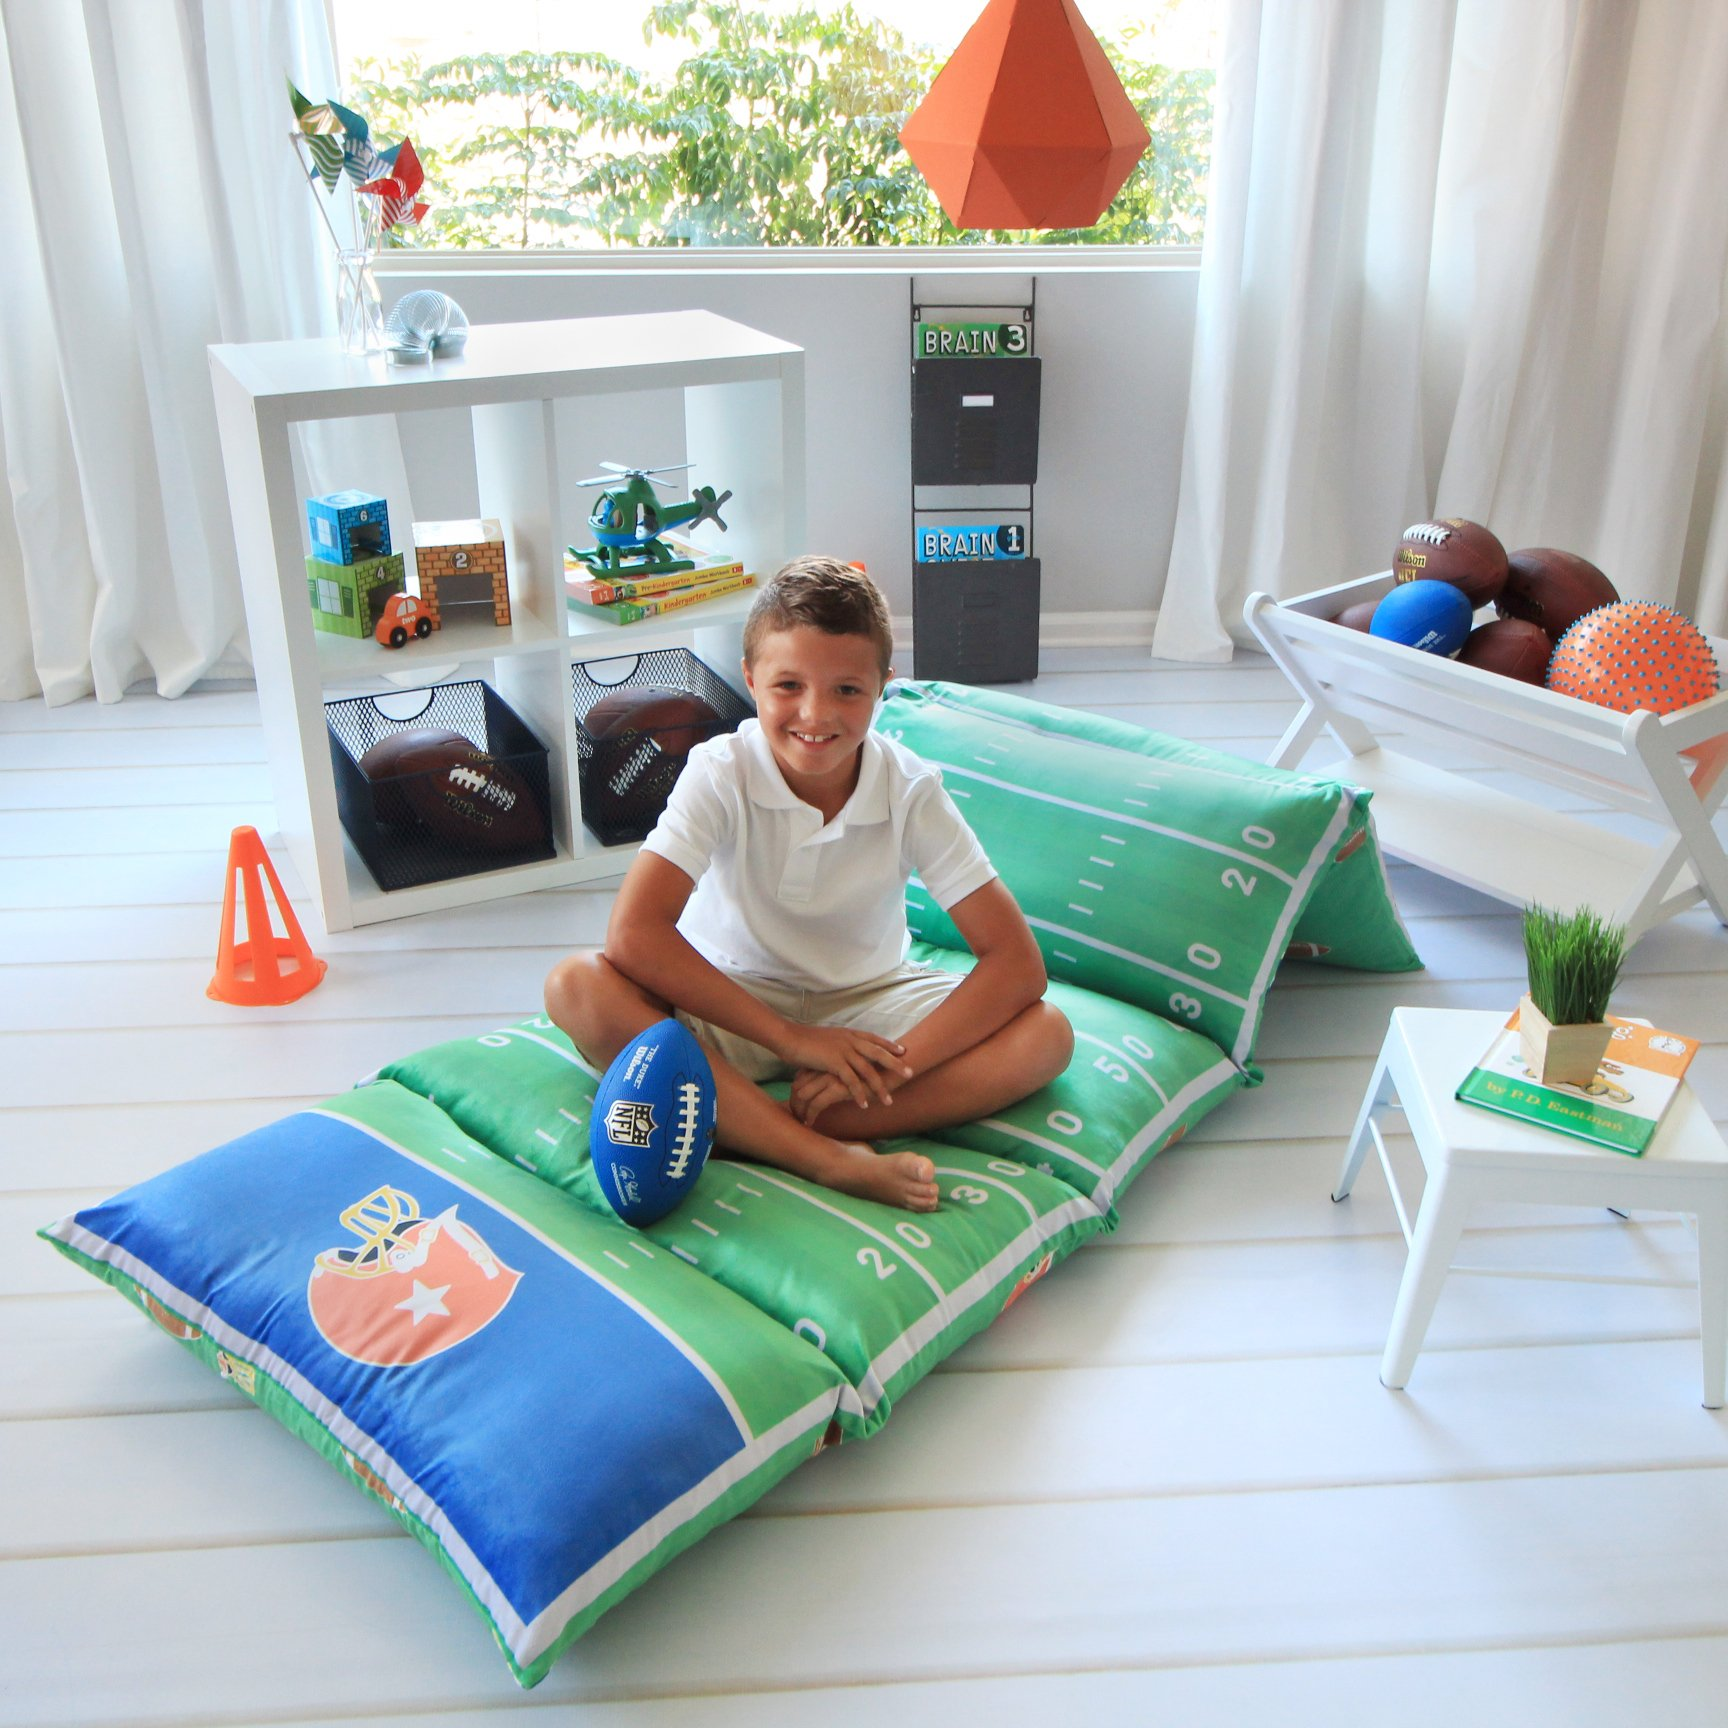 Buy Kids Floor Pillow Bed Cover - Use as Nap Mat, Portable ...